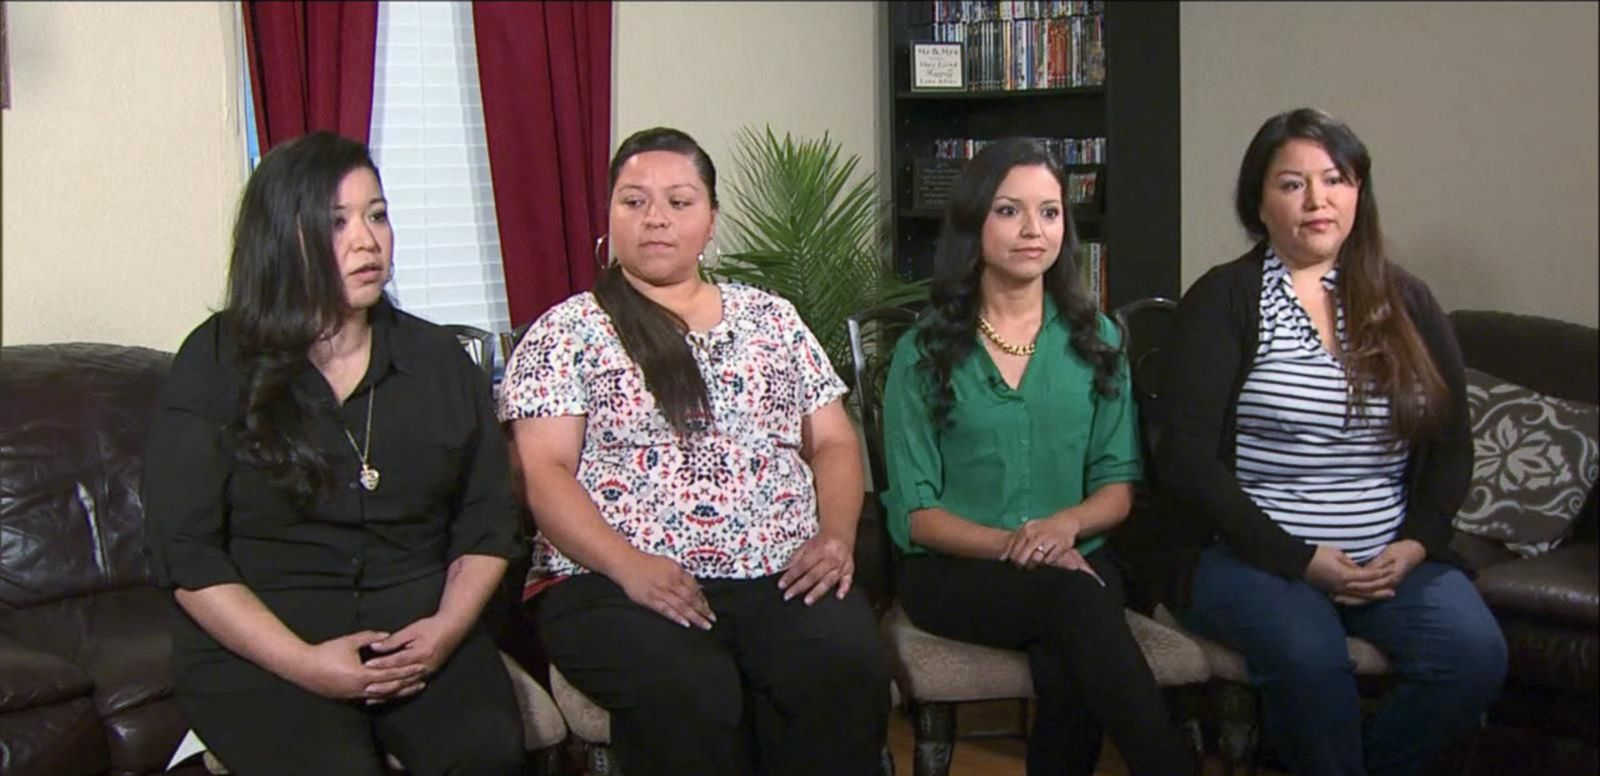 VIDEO: Sisters Team Up to Eradicate Nearly $200K in Debt